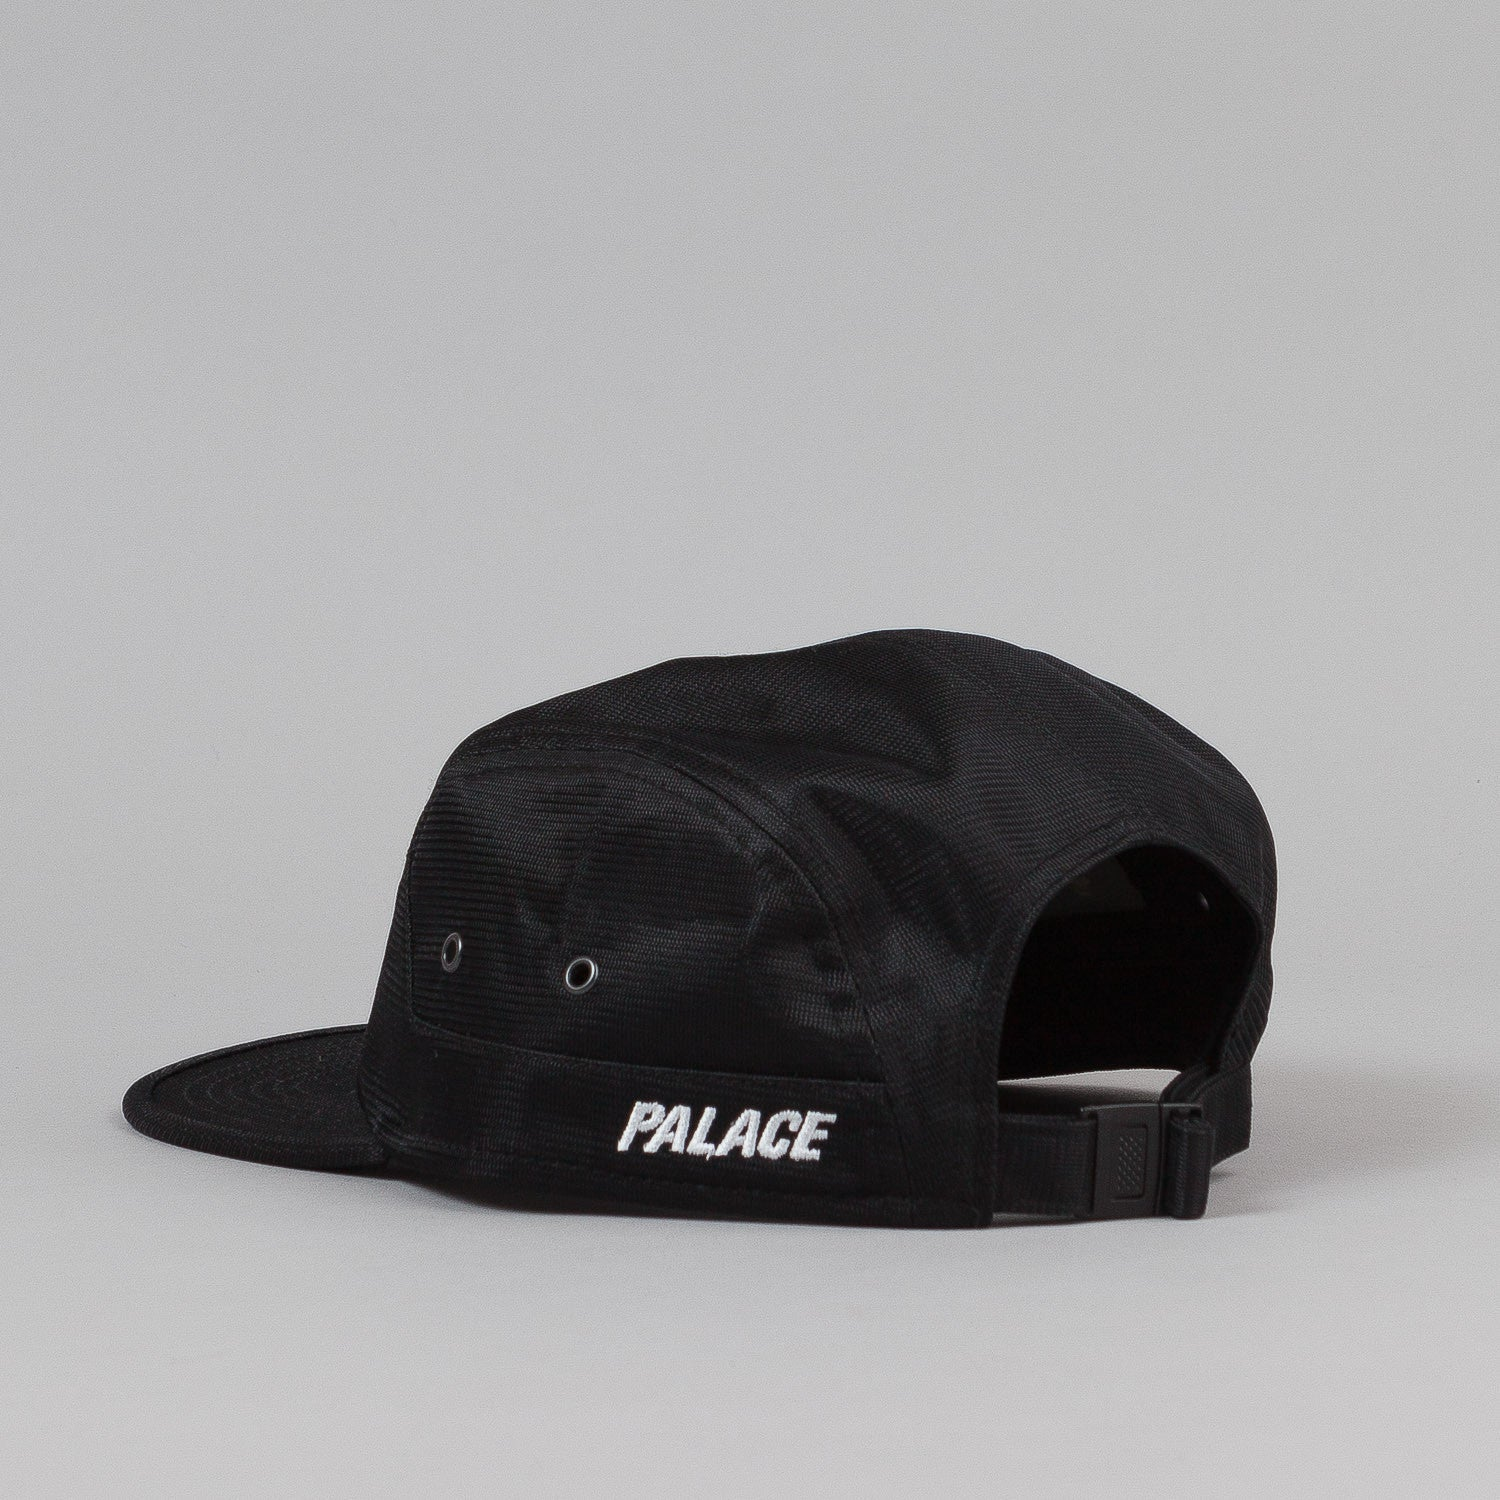 Palace 7 Panel Cap - Black